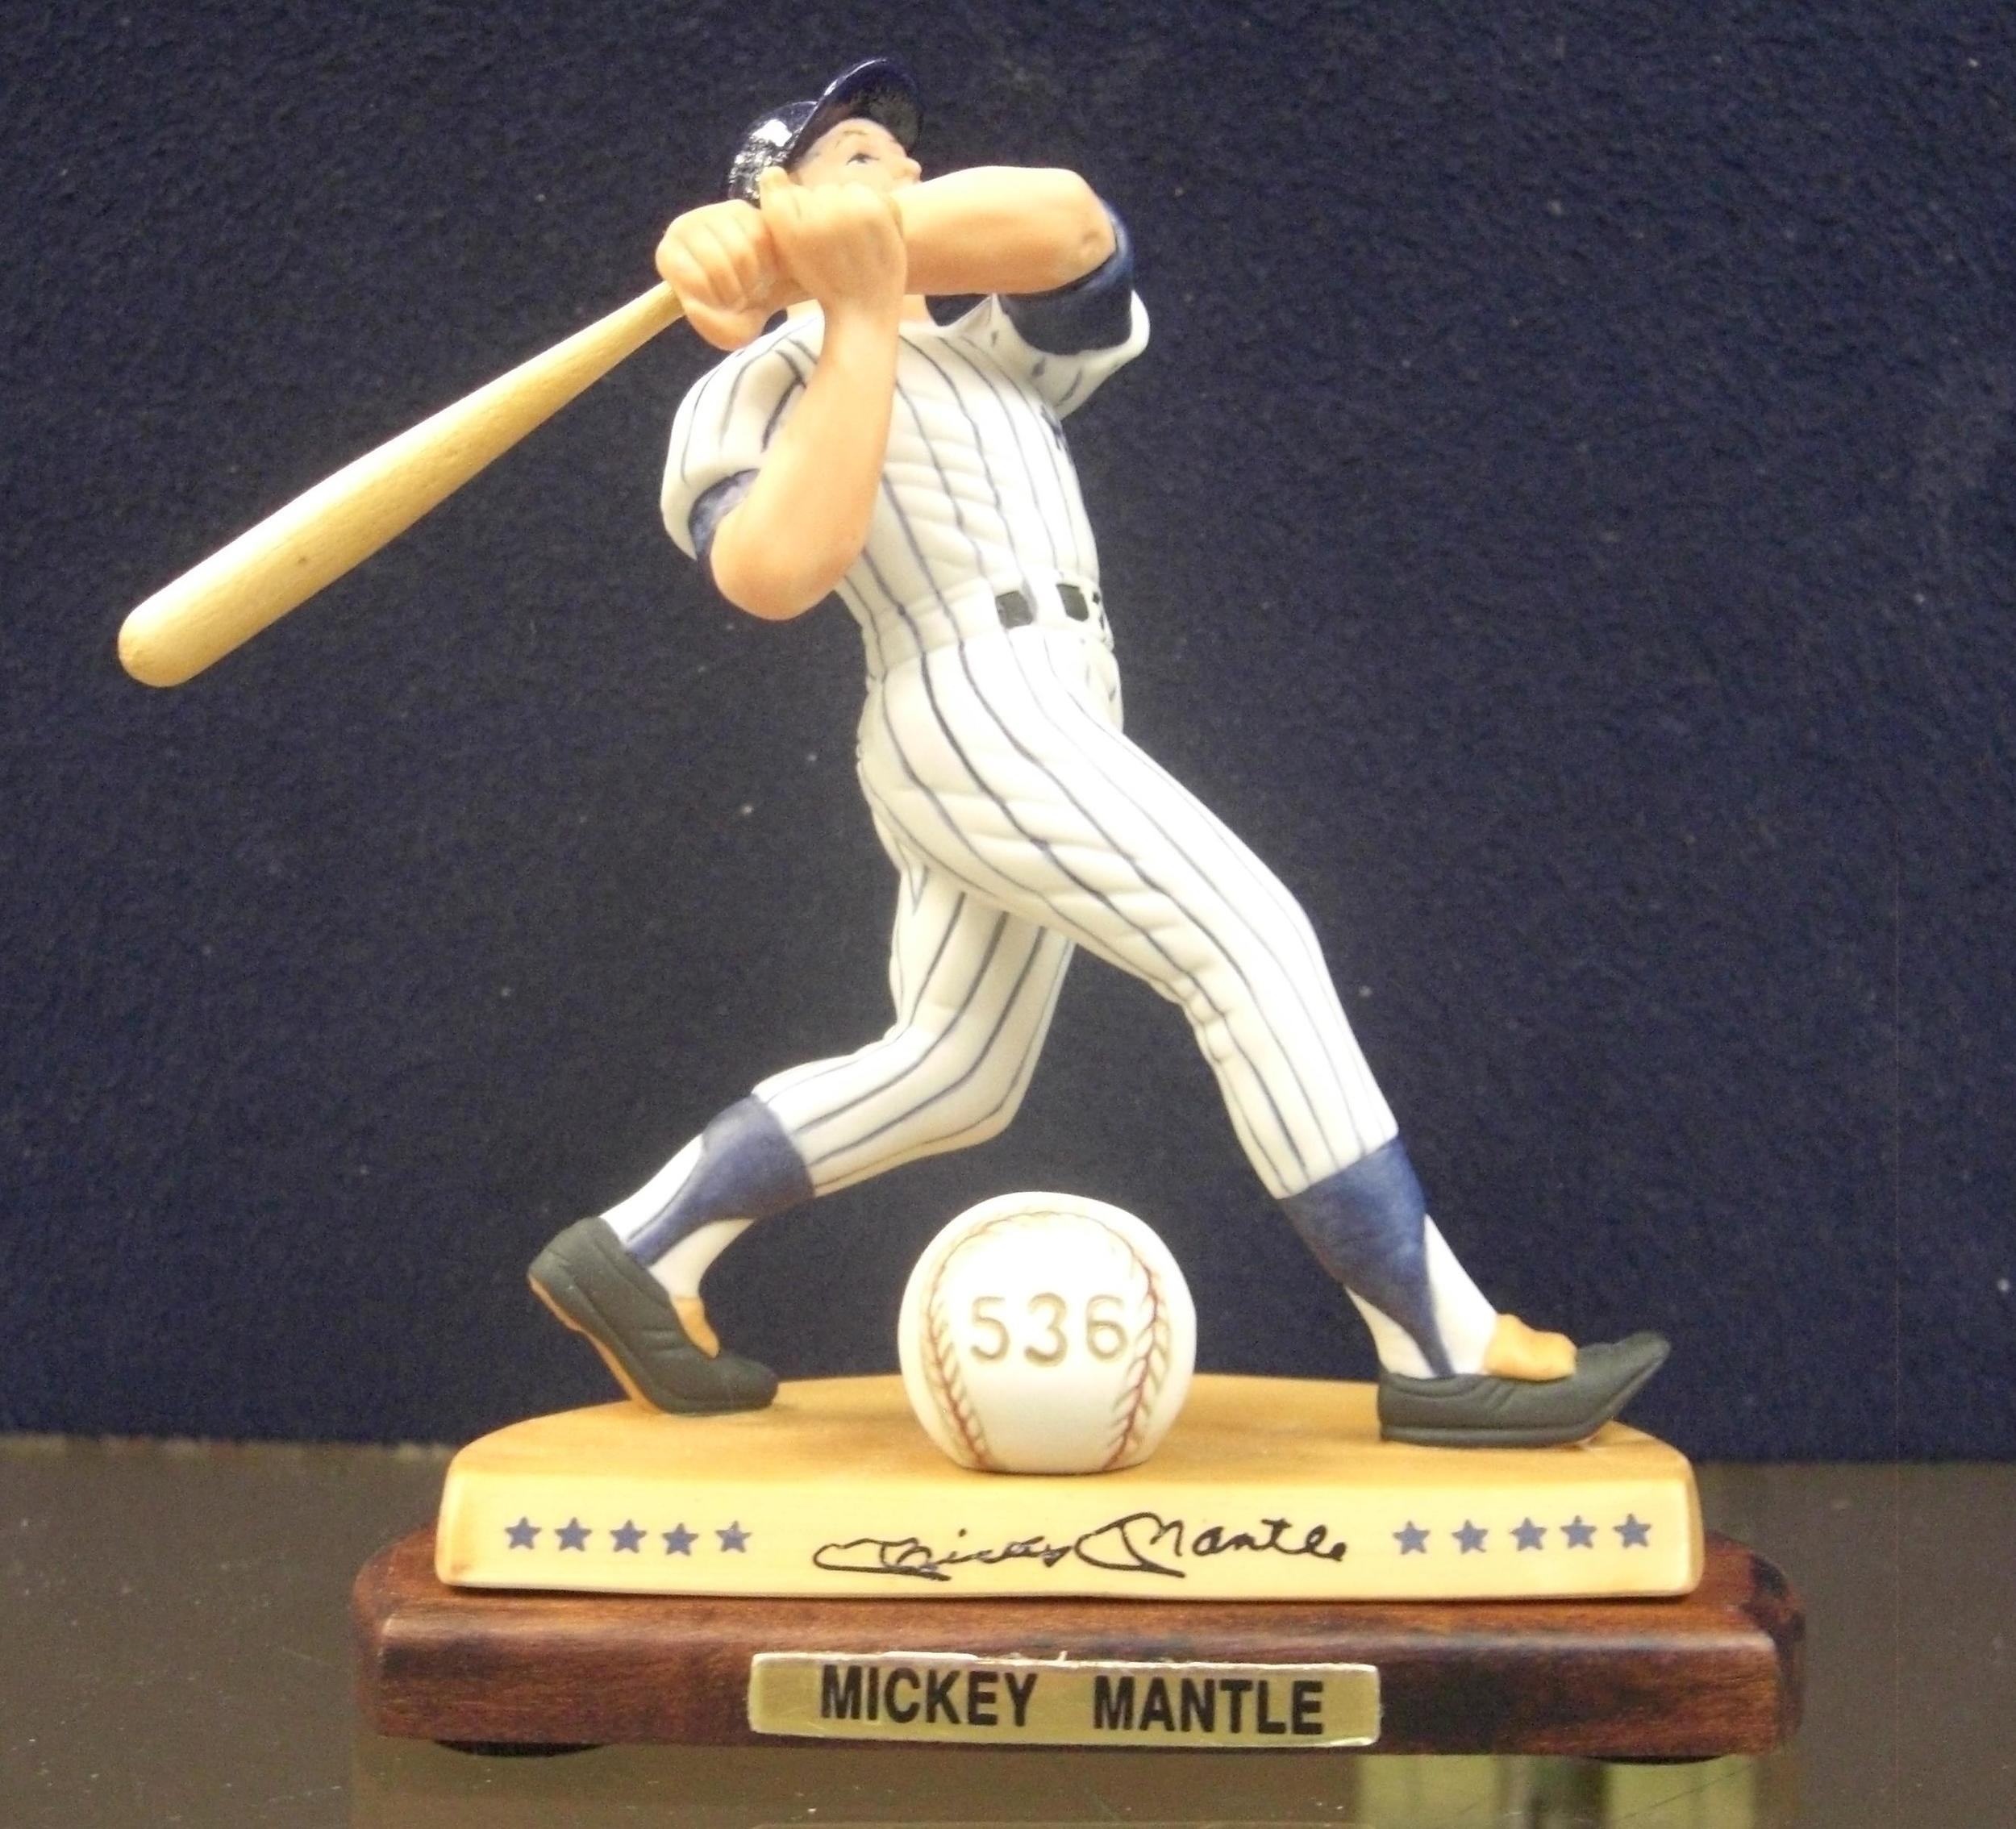 Mickey Mantle sports figurine.